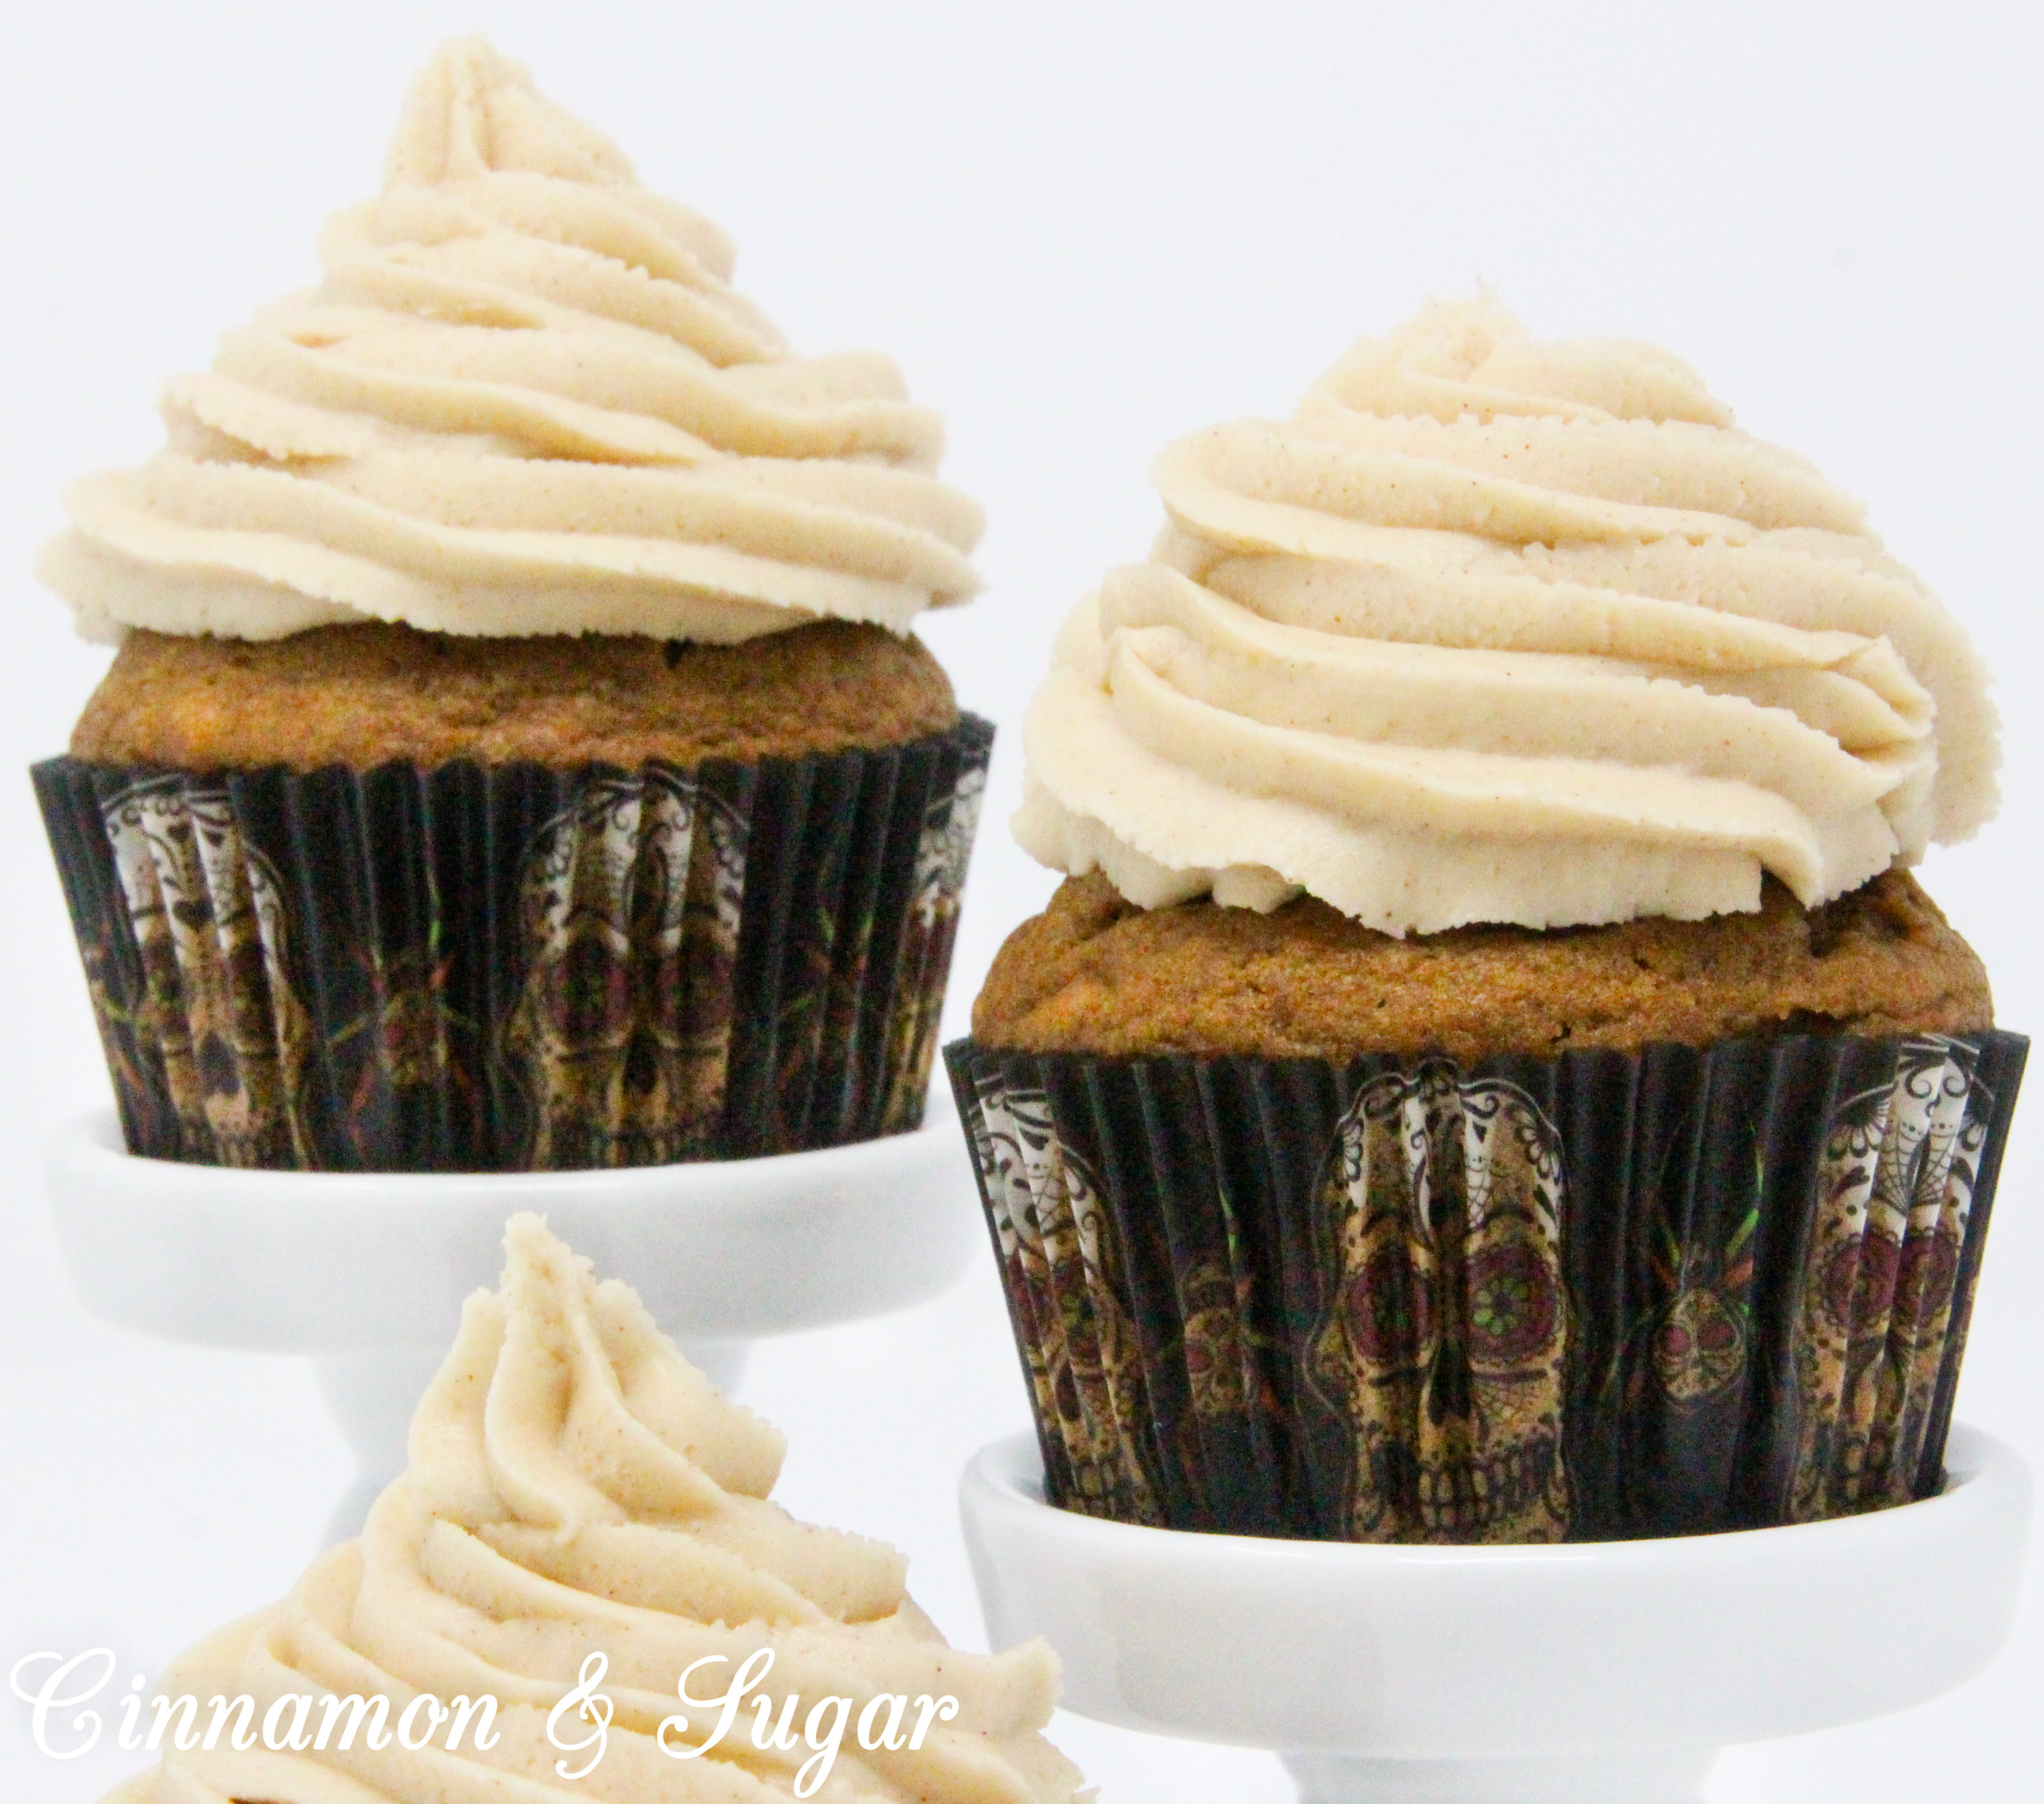 Fireball Pumpkin Spiced Coffee Cupcakes combine the flavors of fall with the bite of warming cinnamon whiskey. These cocktail cupcakes are perfect for imbibing in front of a cozy fire or sharing with friends as you celebrate autumn. Recipe created by Kim Davis, author of CAKE POPPED OFF.